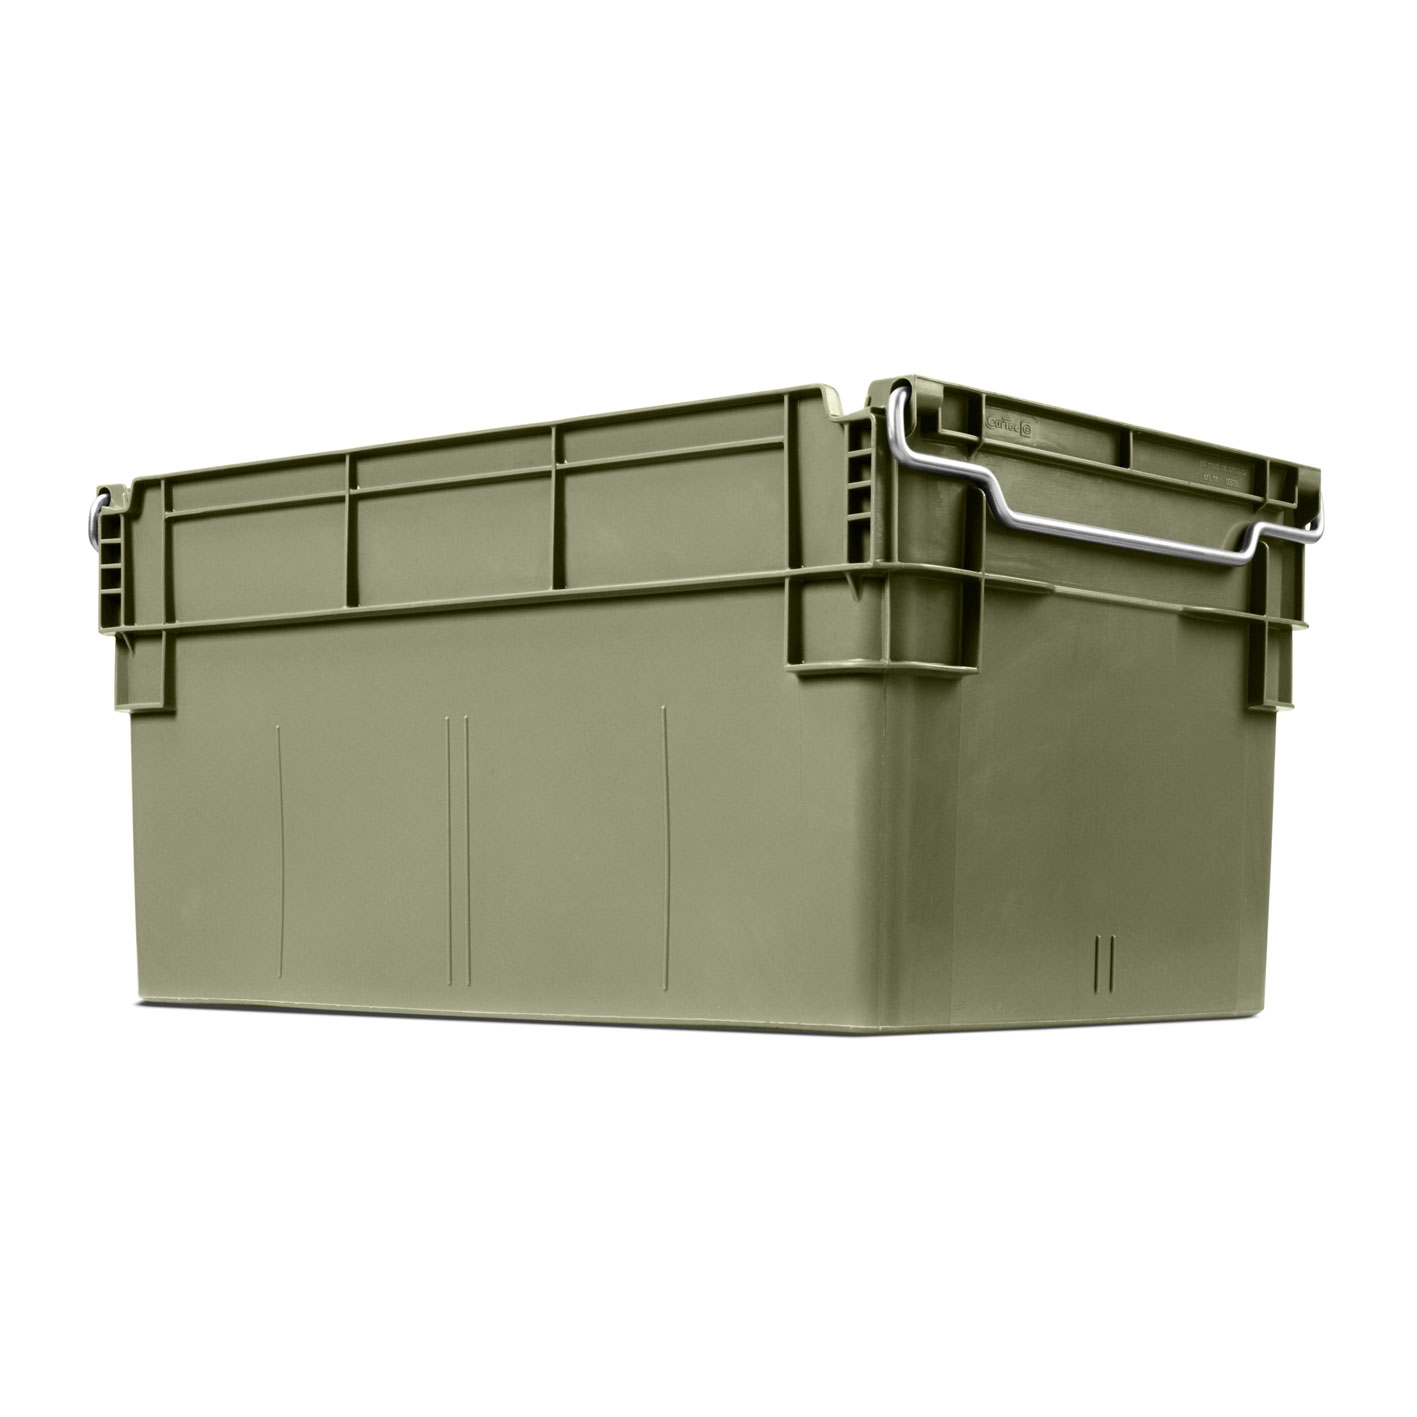 60 liter Container with stacking bars